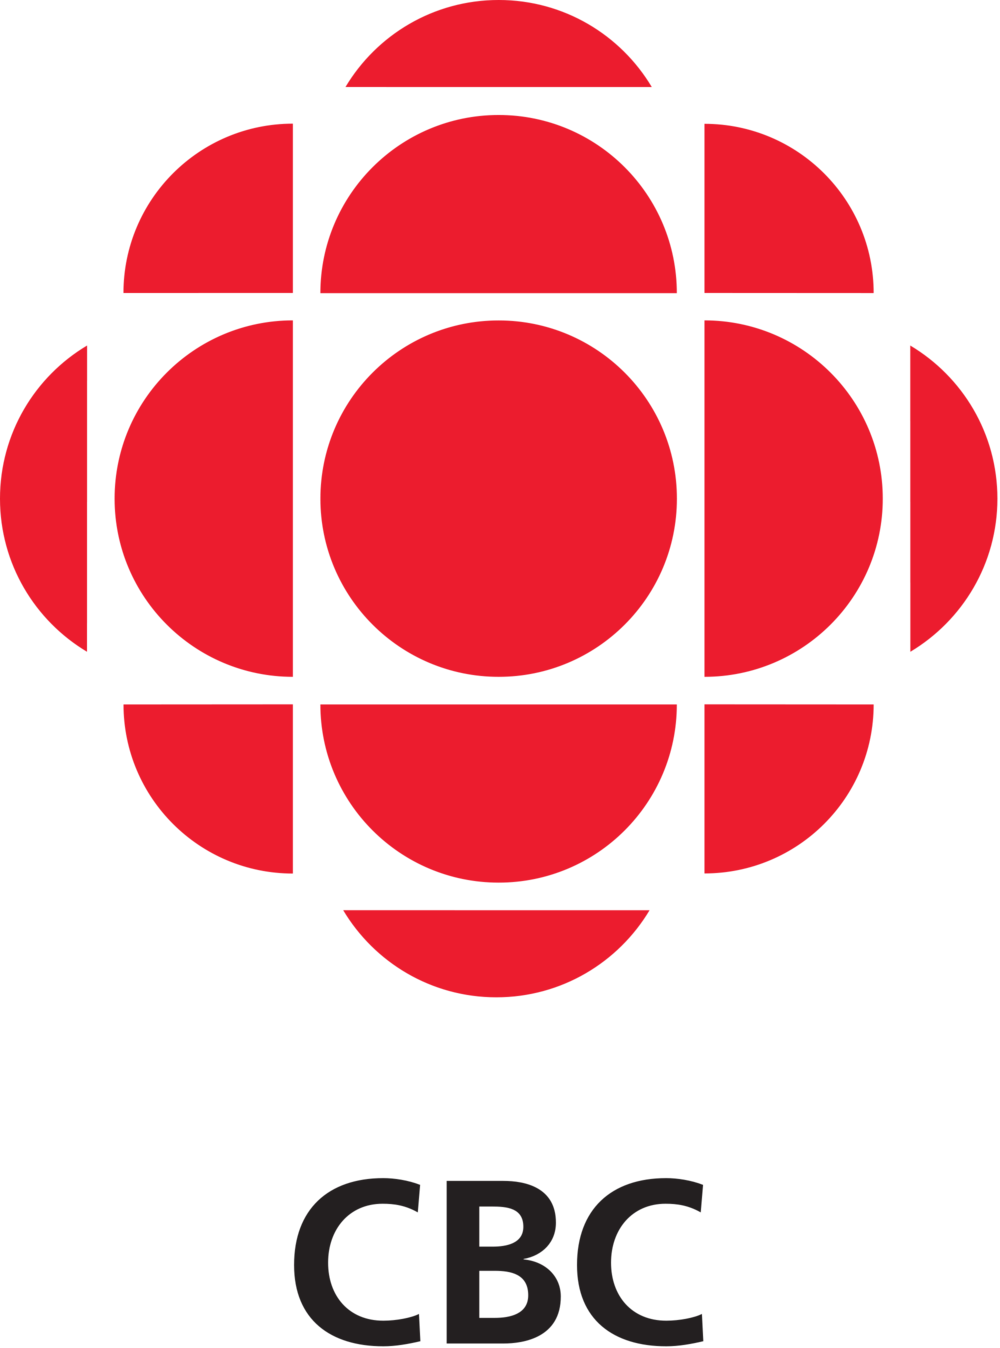 Canadian_Broadcasting_Corporation.png